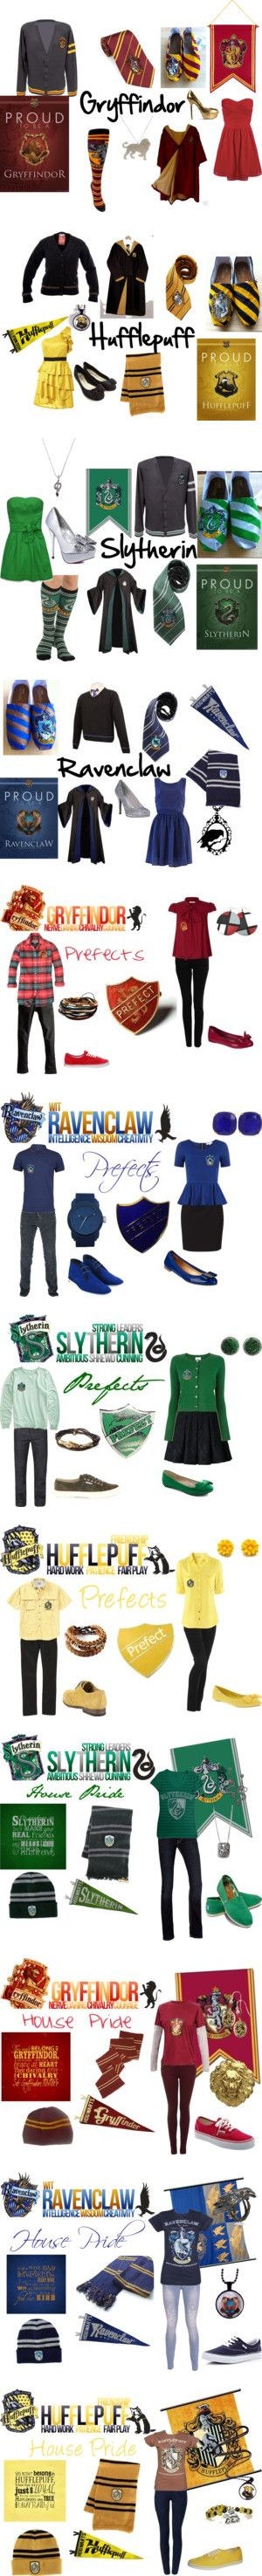 """Harry Potter"" by lillyred on Polyvore"